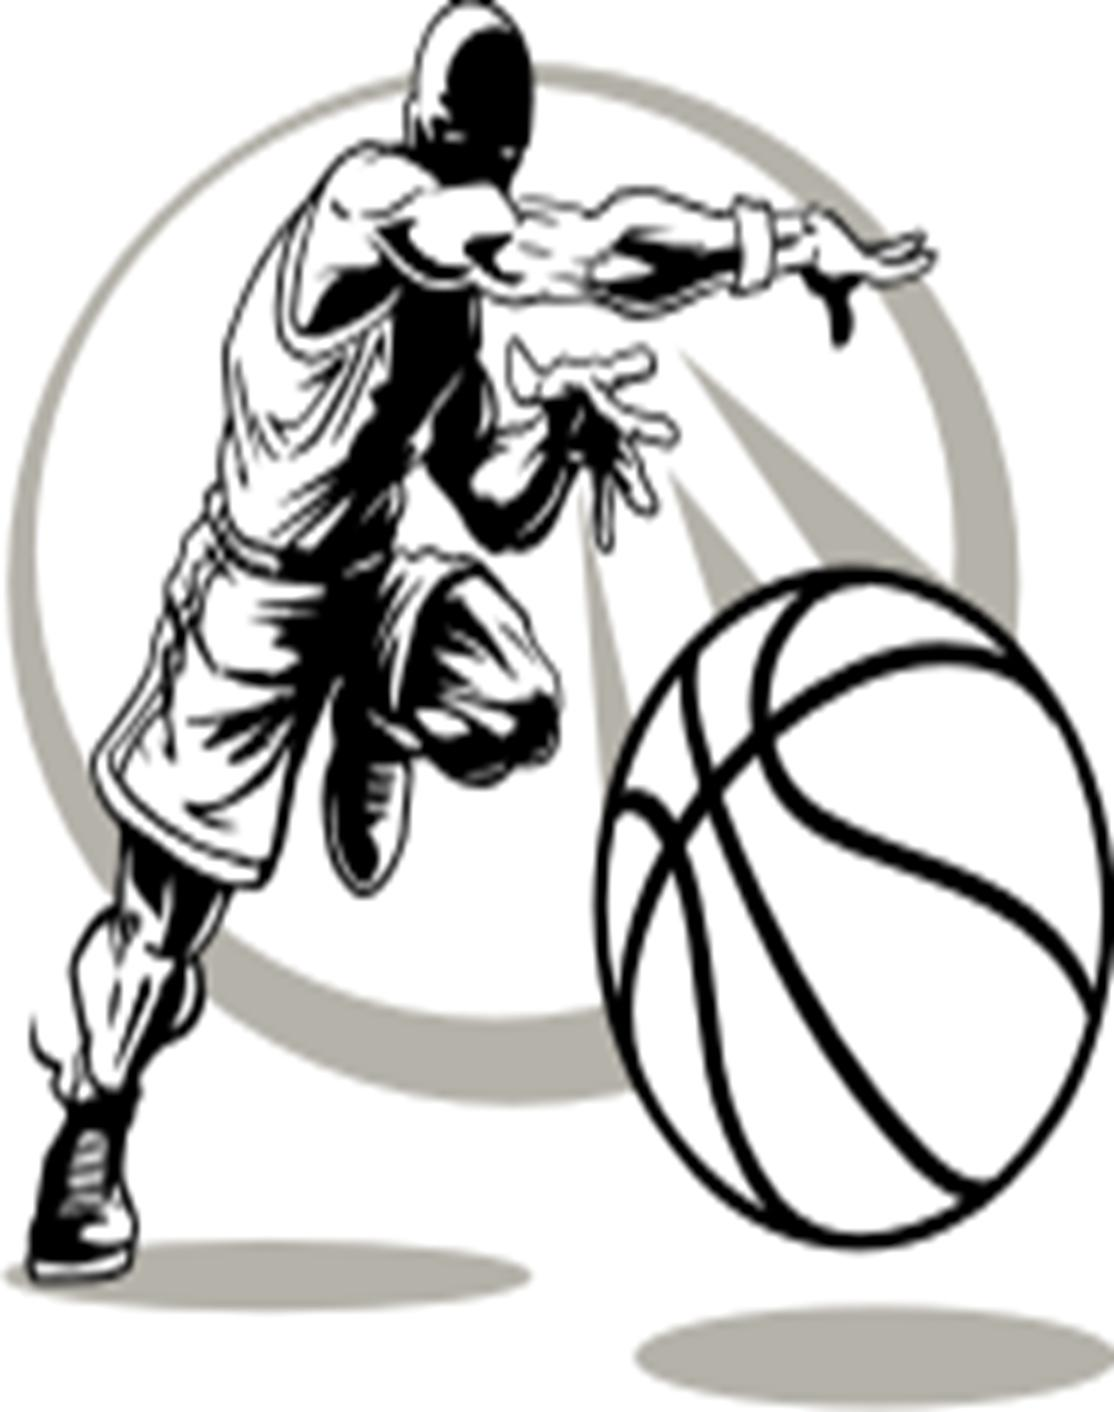 Boys Basketball Clipart.